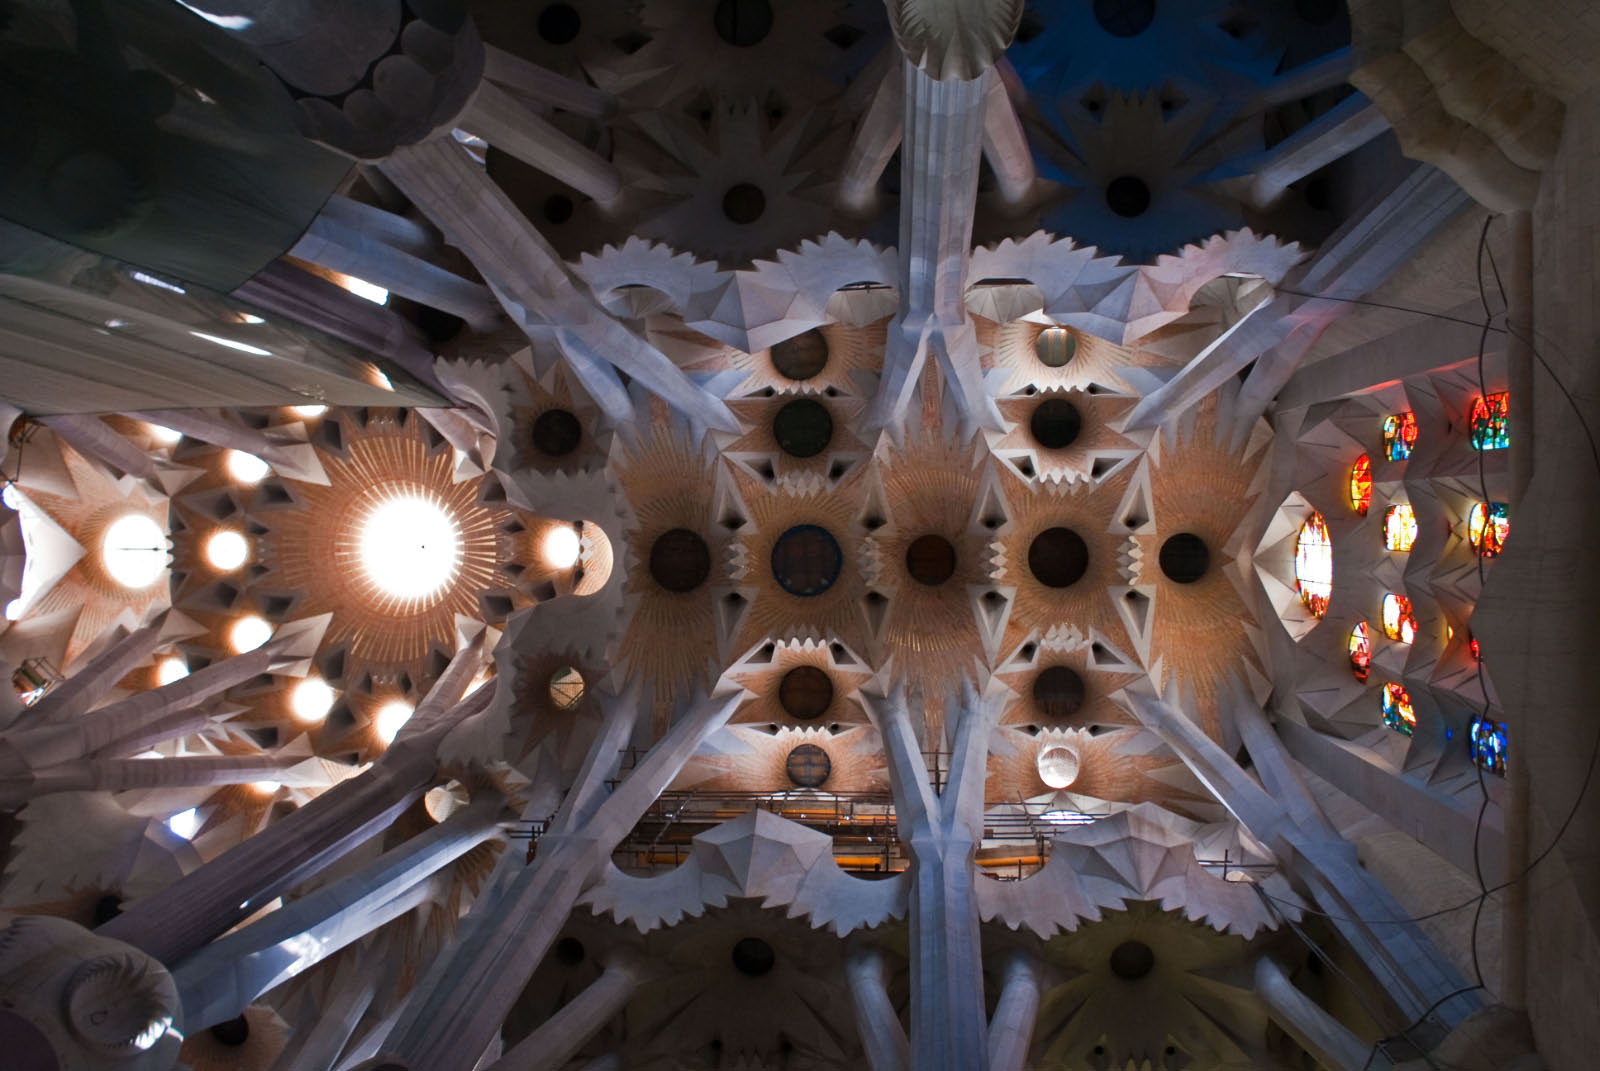 Sagrada_Familia_Interior-01